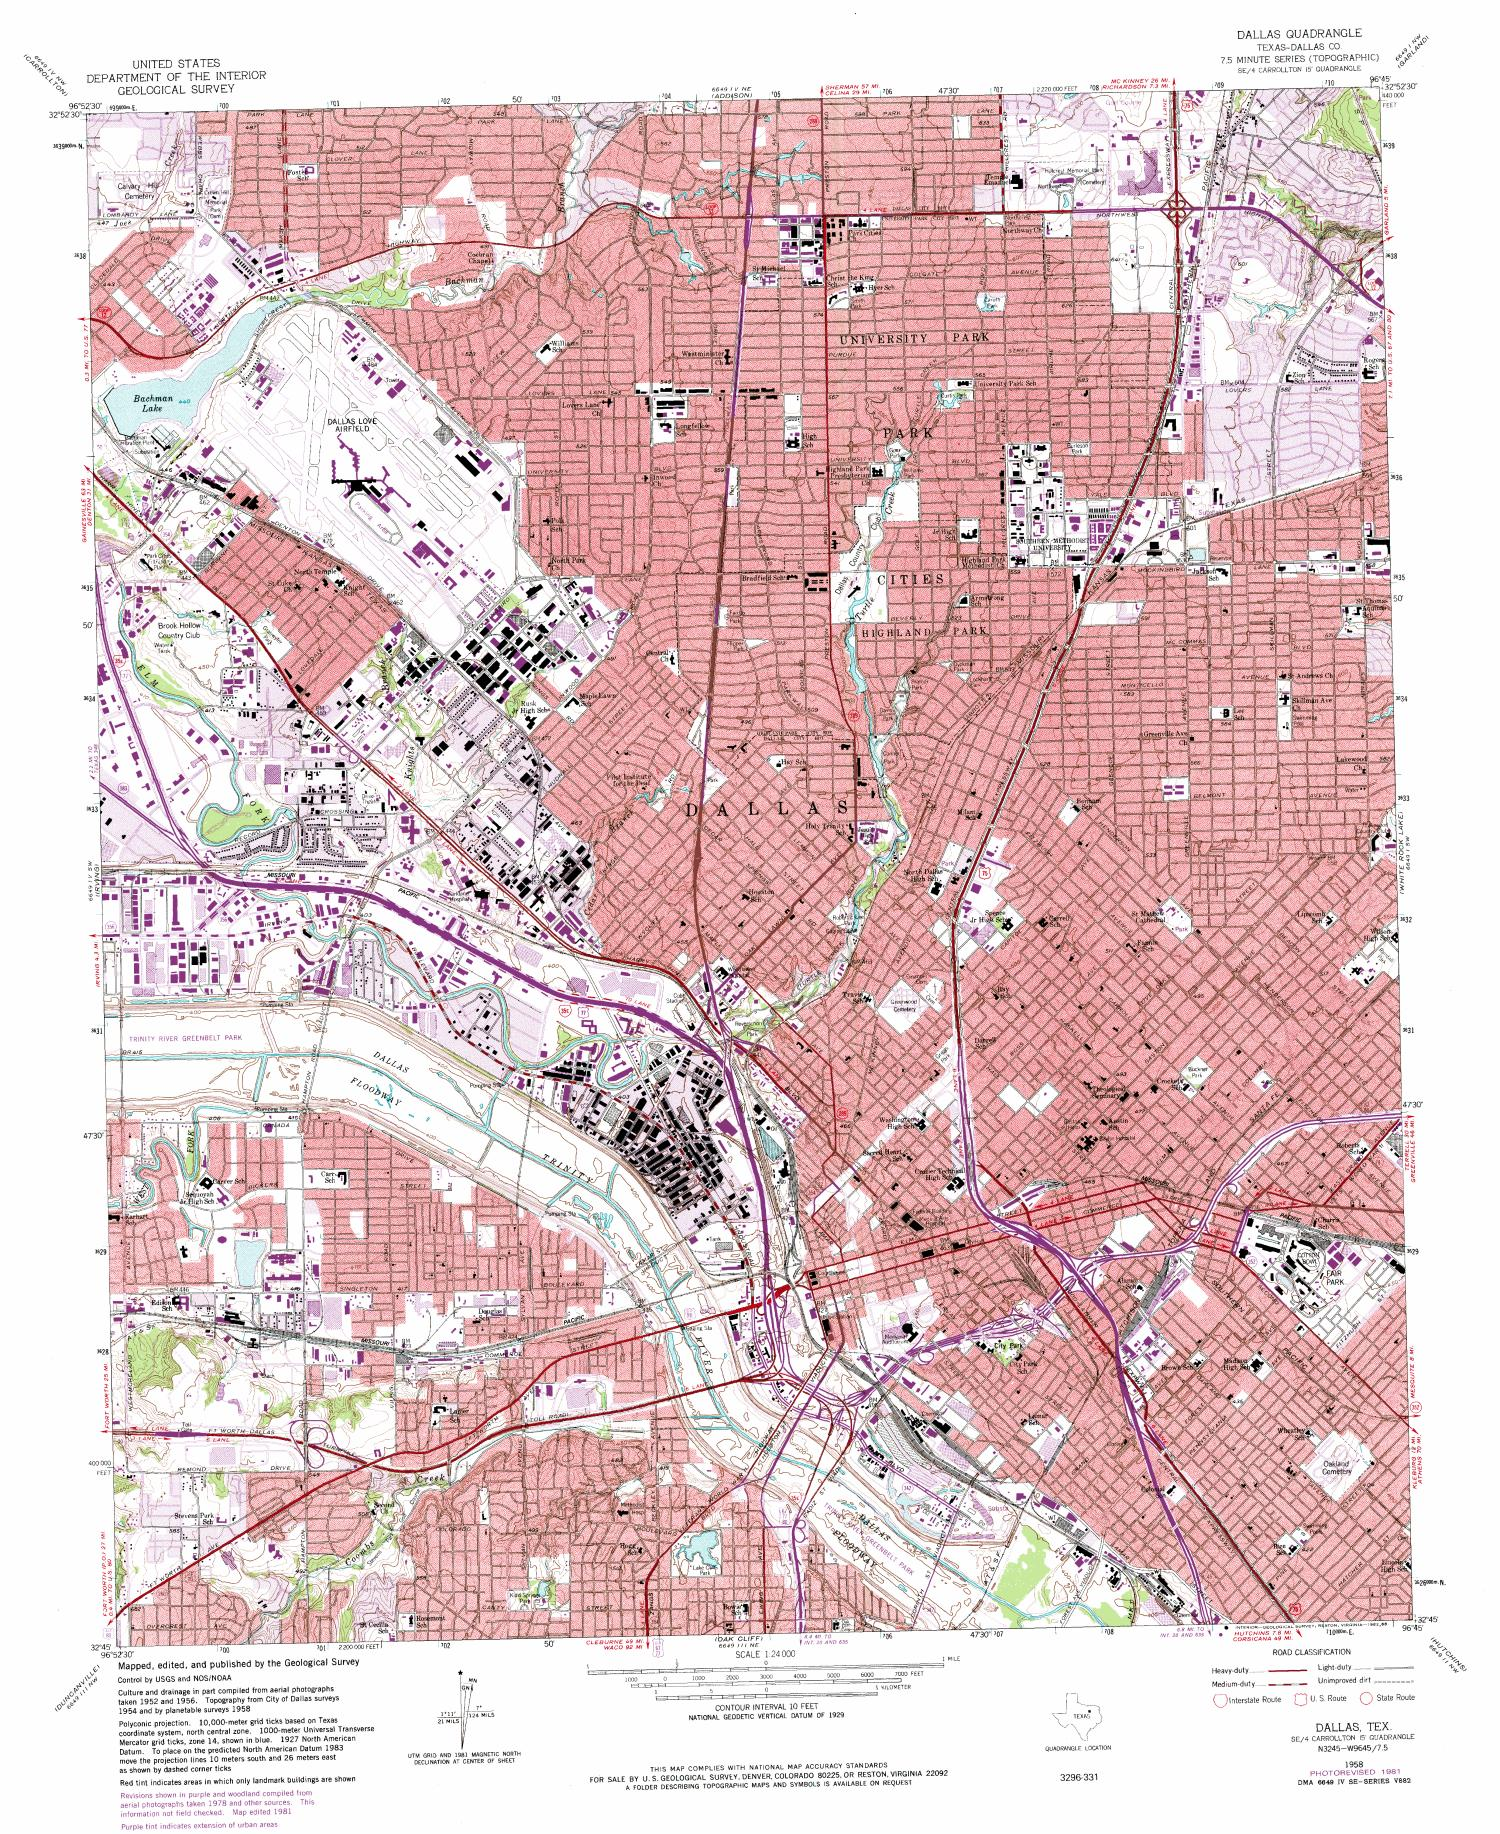 Dallas Quadrangle, Topographic map of a portion of Texas from the United States Geological Survey (USGS) project. The map includes towns, historic or notable sites, bodies of water, and other geologic features. Scale 1:24,000,